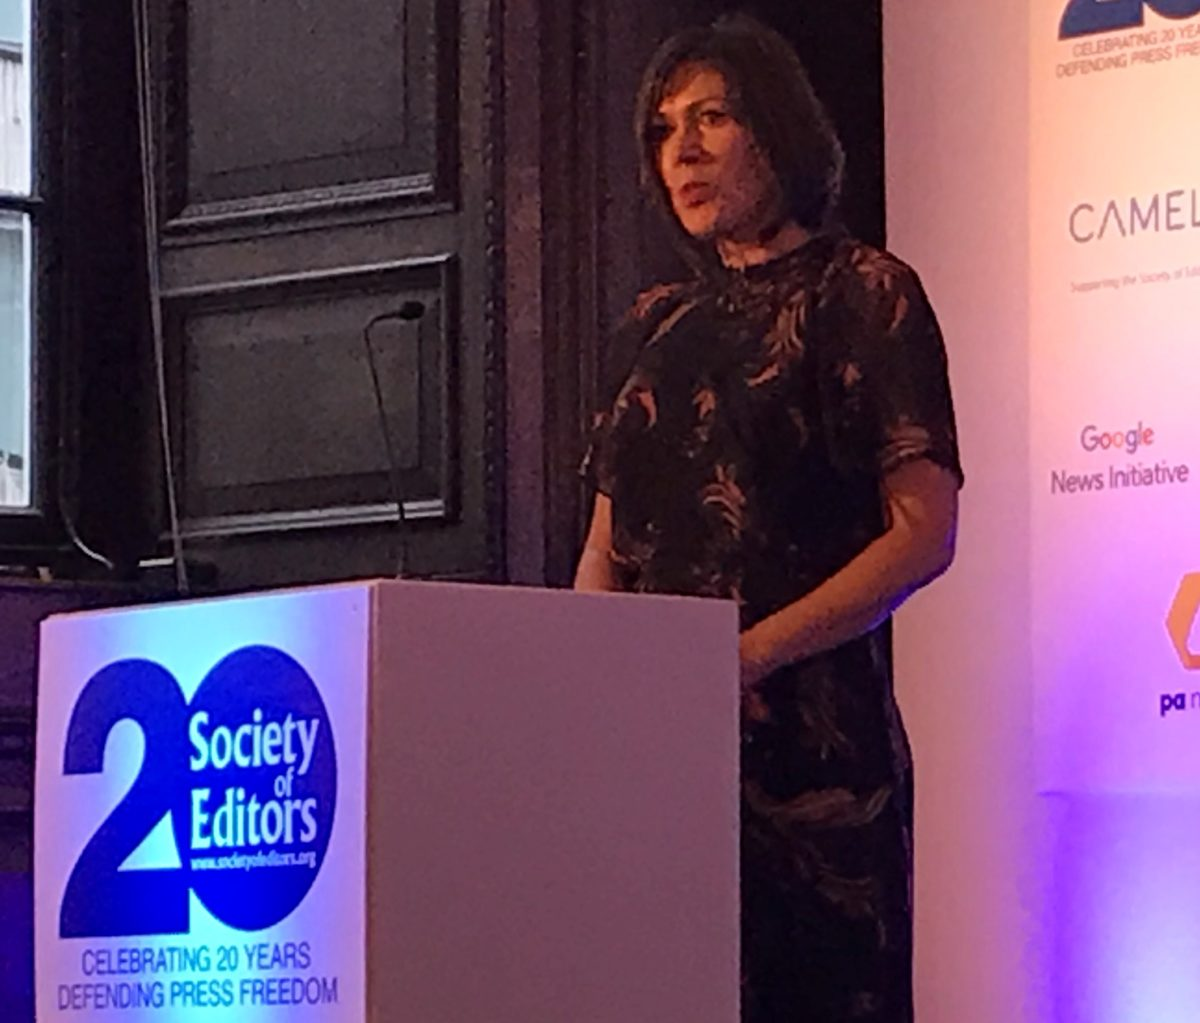 Selling ads not journalism has cost news industry £1bn over ten years, Newsworks boss says